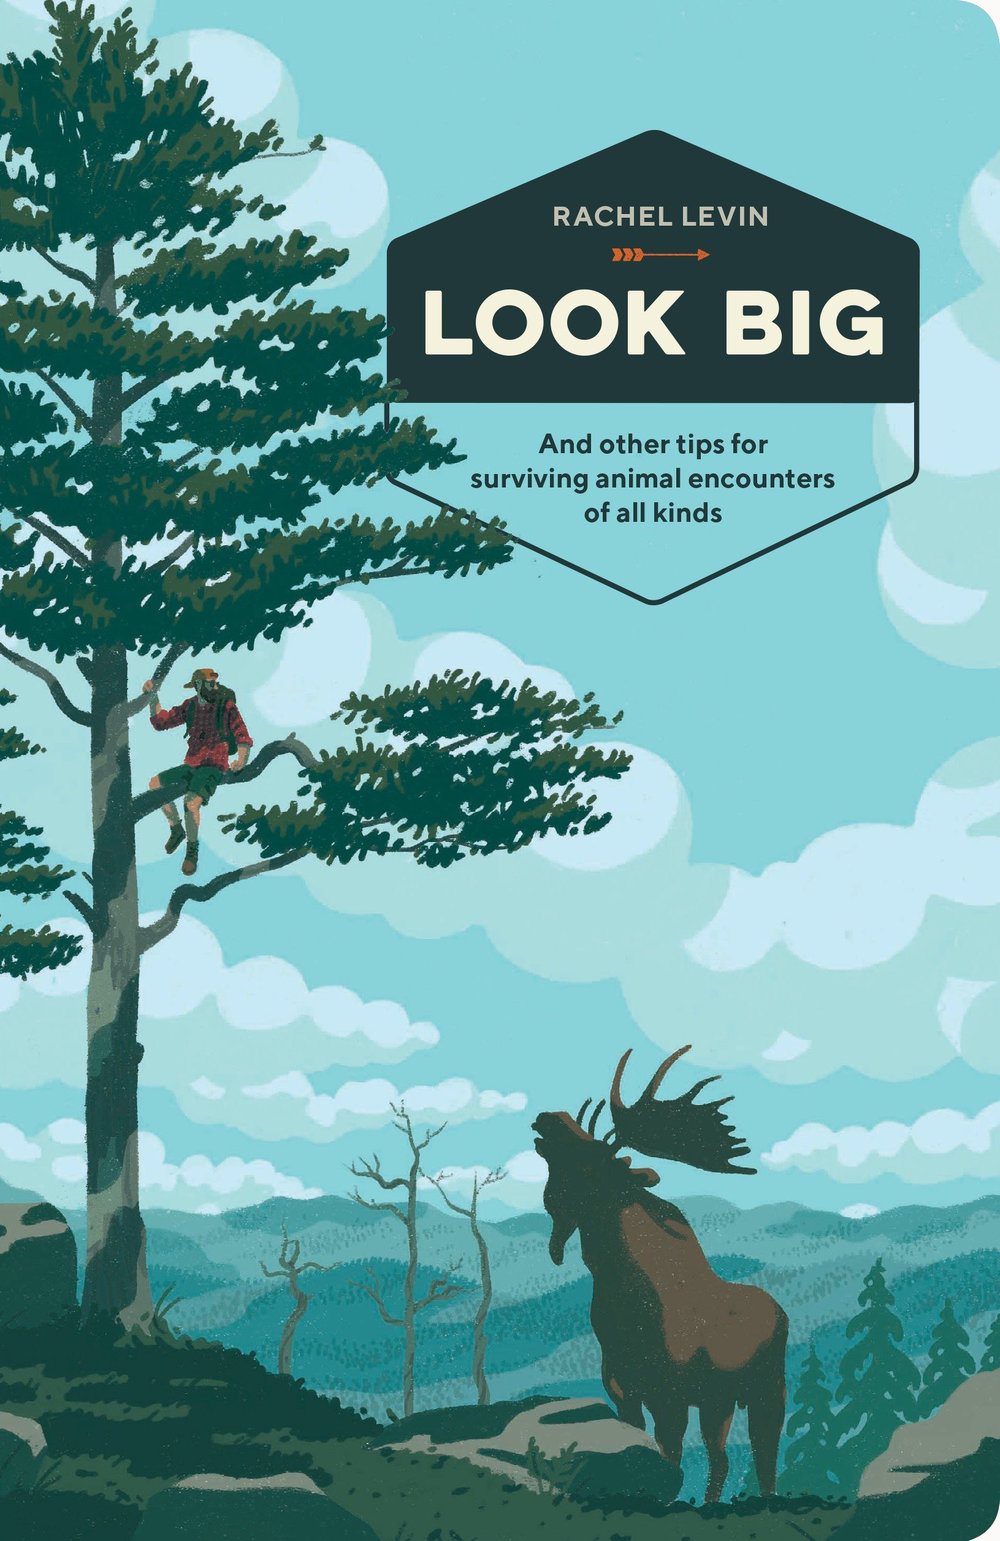 Illustrations for Look Big, Cover Design: Ashley Lima